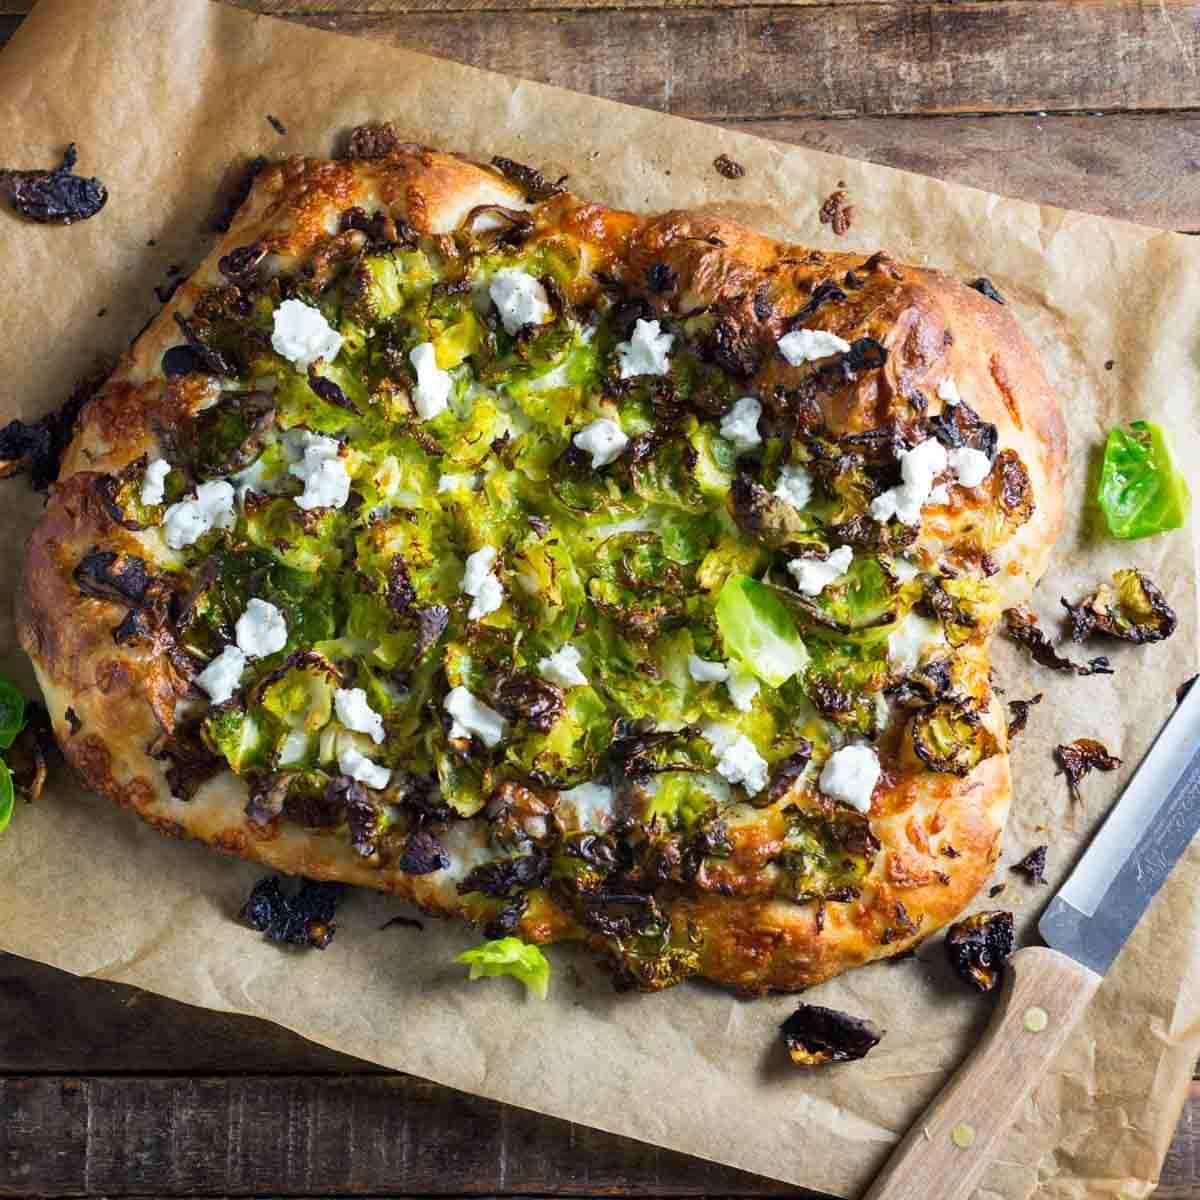 Brussels Sprout Pizza with Balsamic Caramelized Onions and Goat Cheese